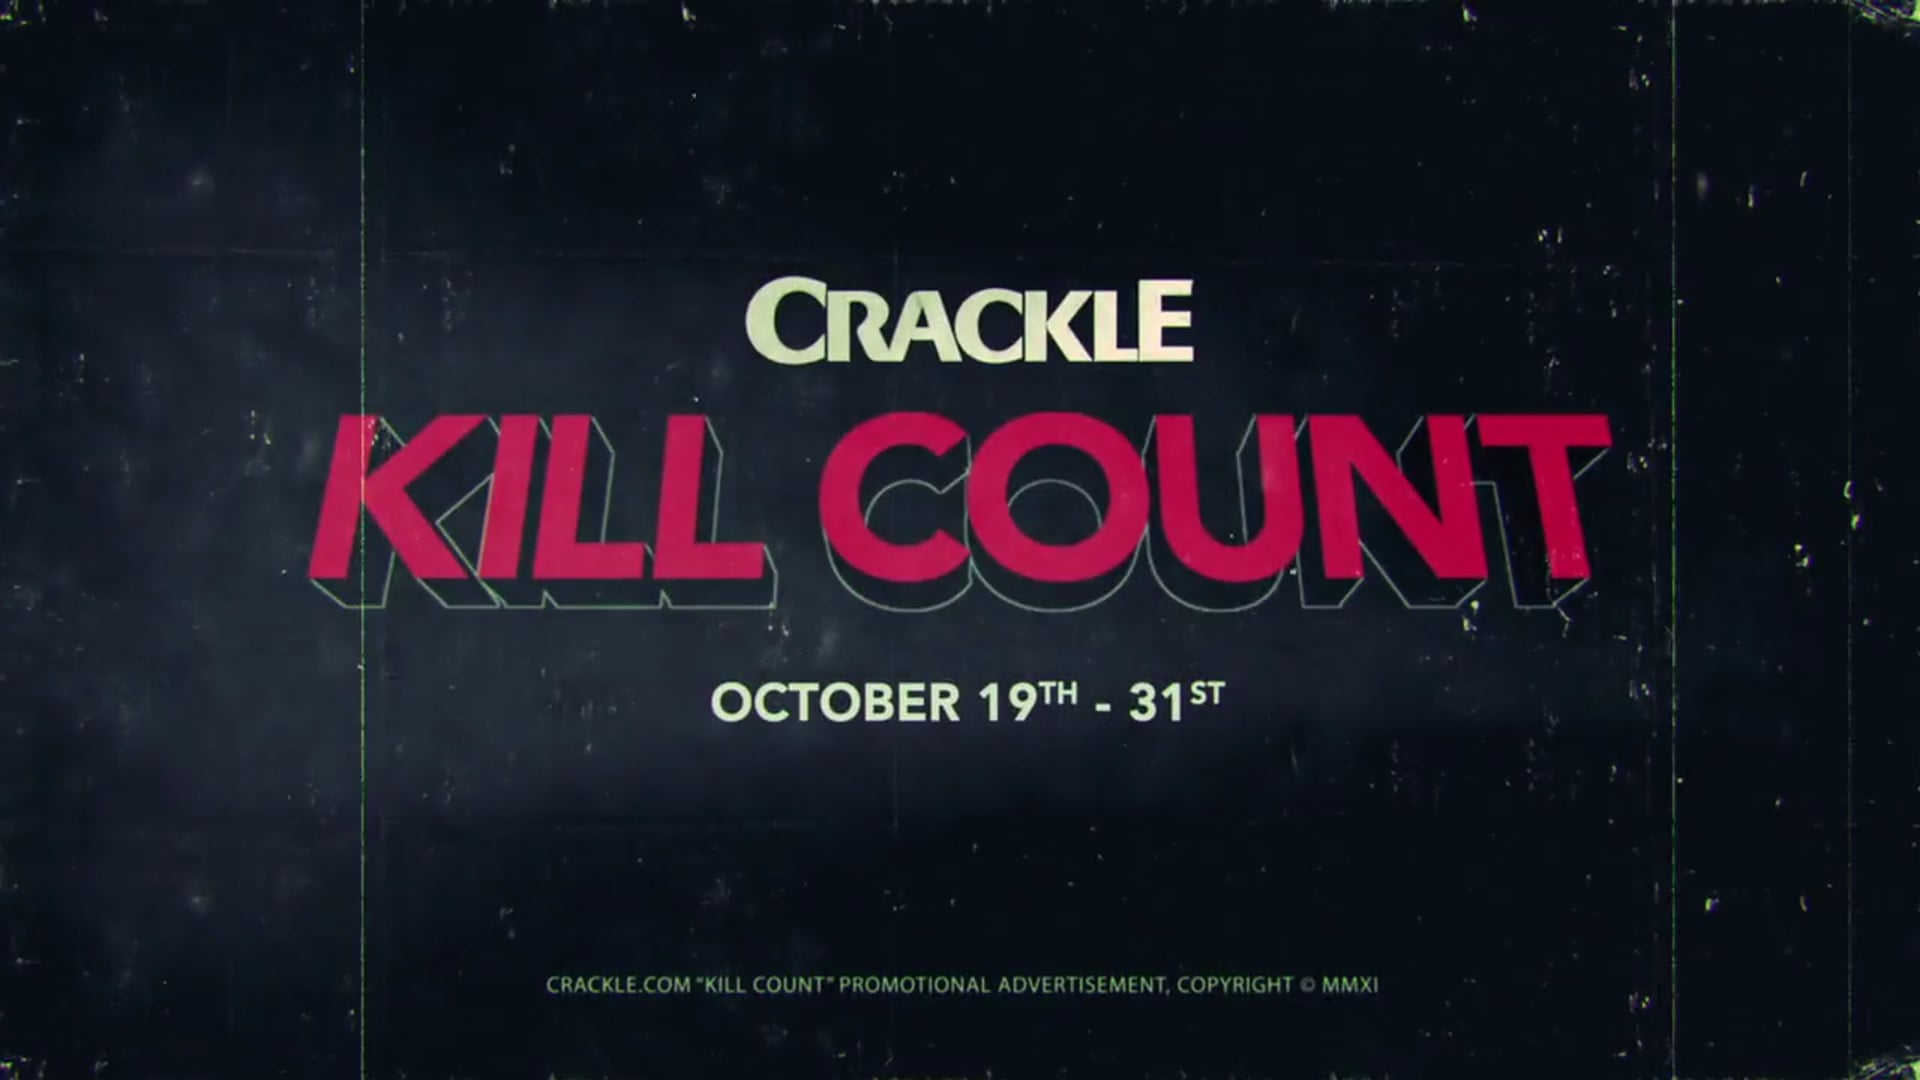 Sony Pictures Entertainment Crackle Kill Count